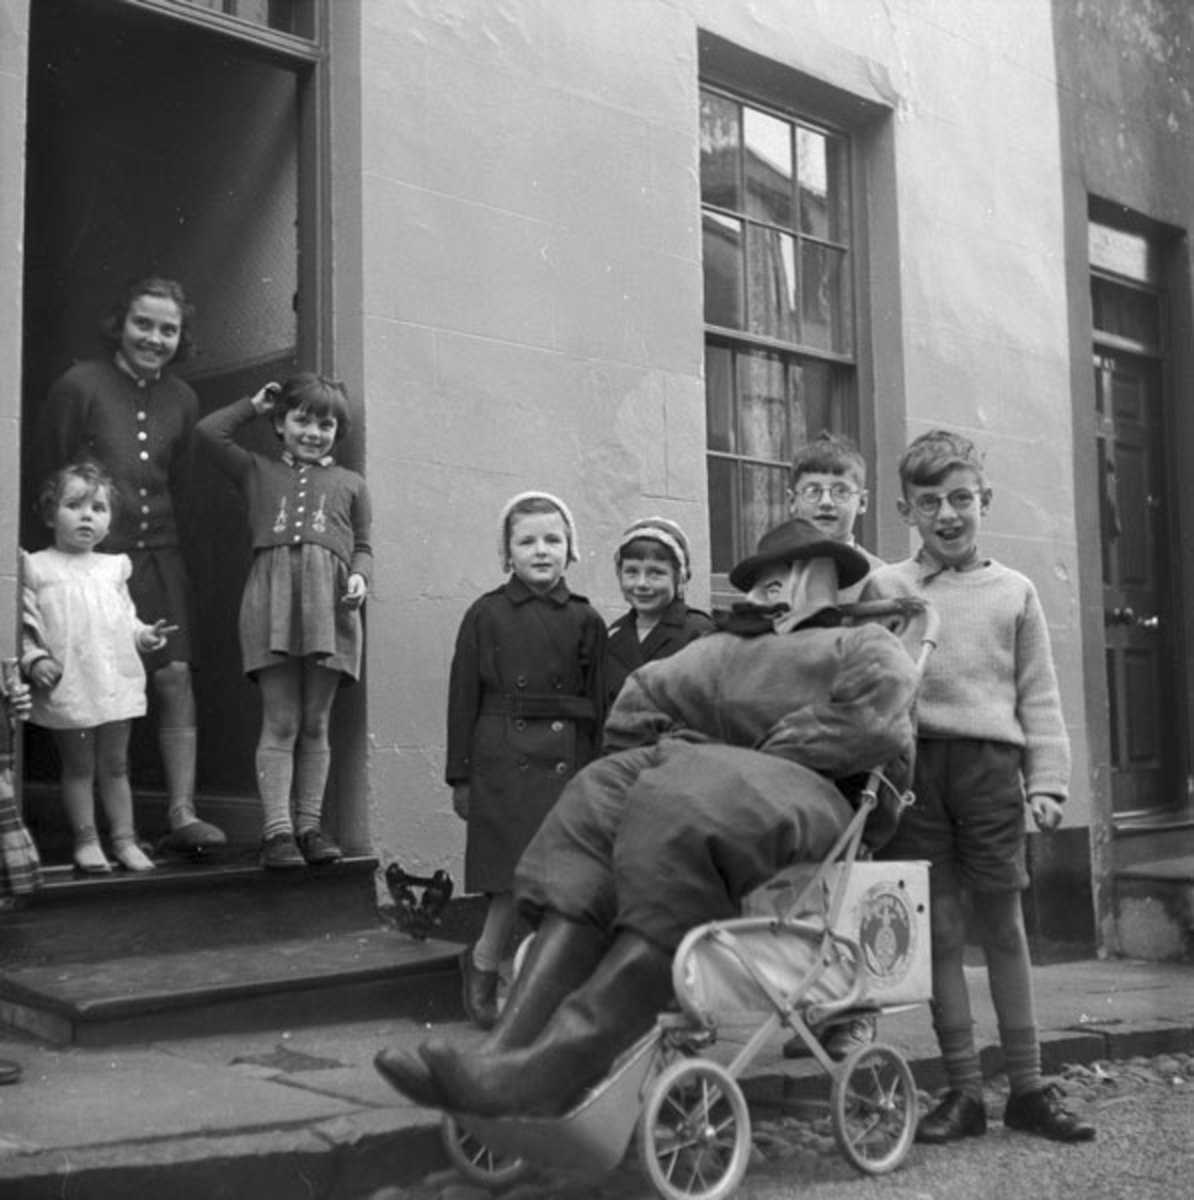 1960 in Wales. Children with an effigy of Guy Fawkes.